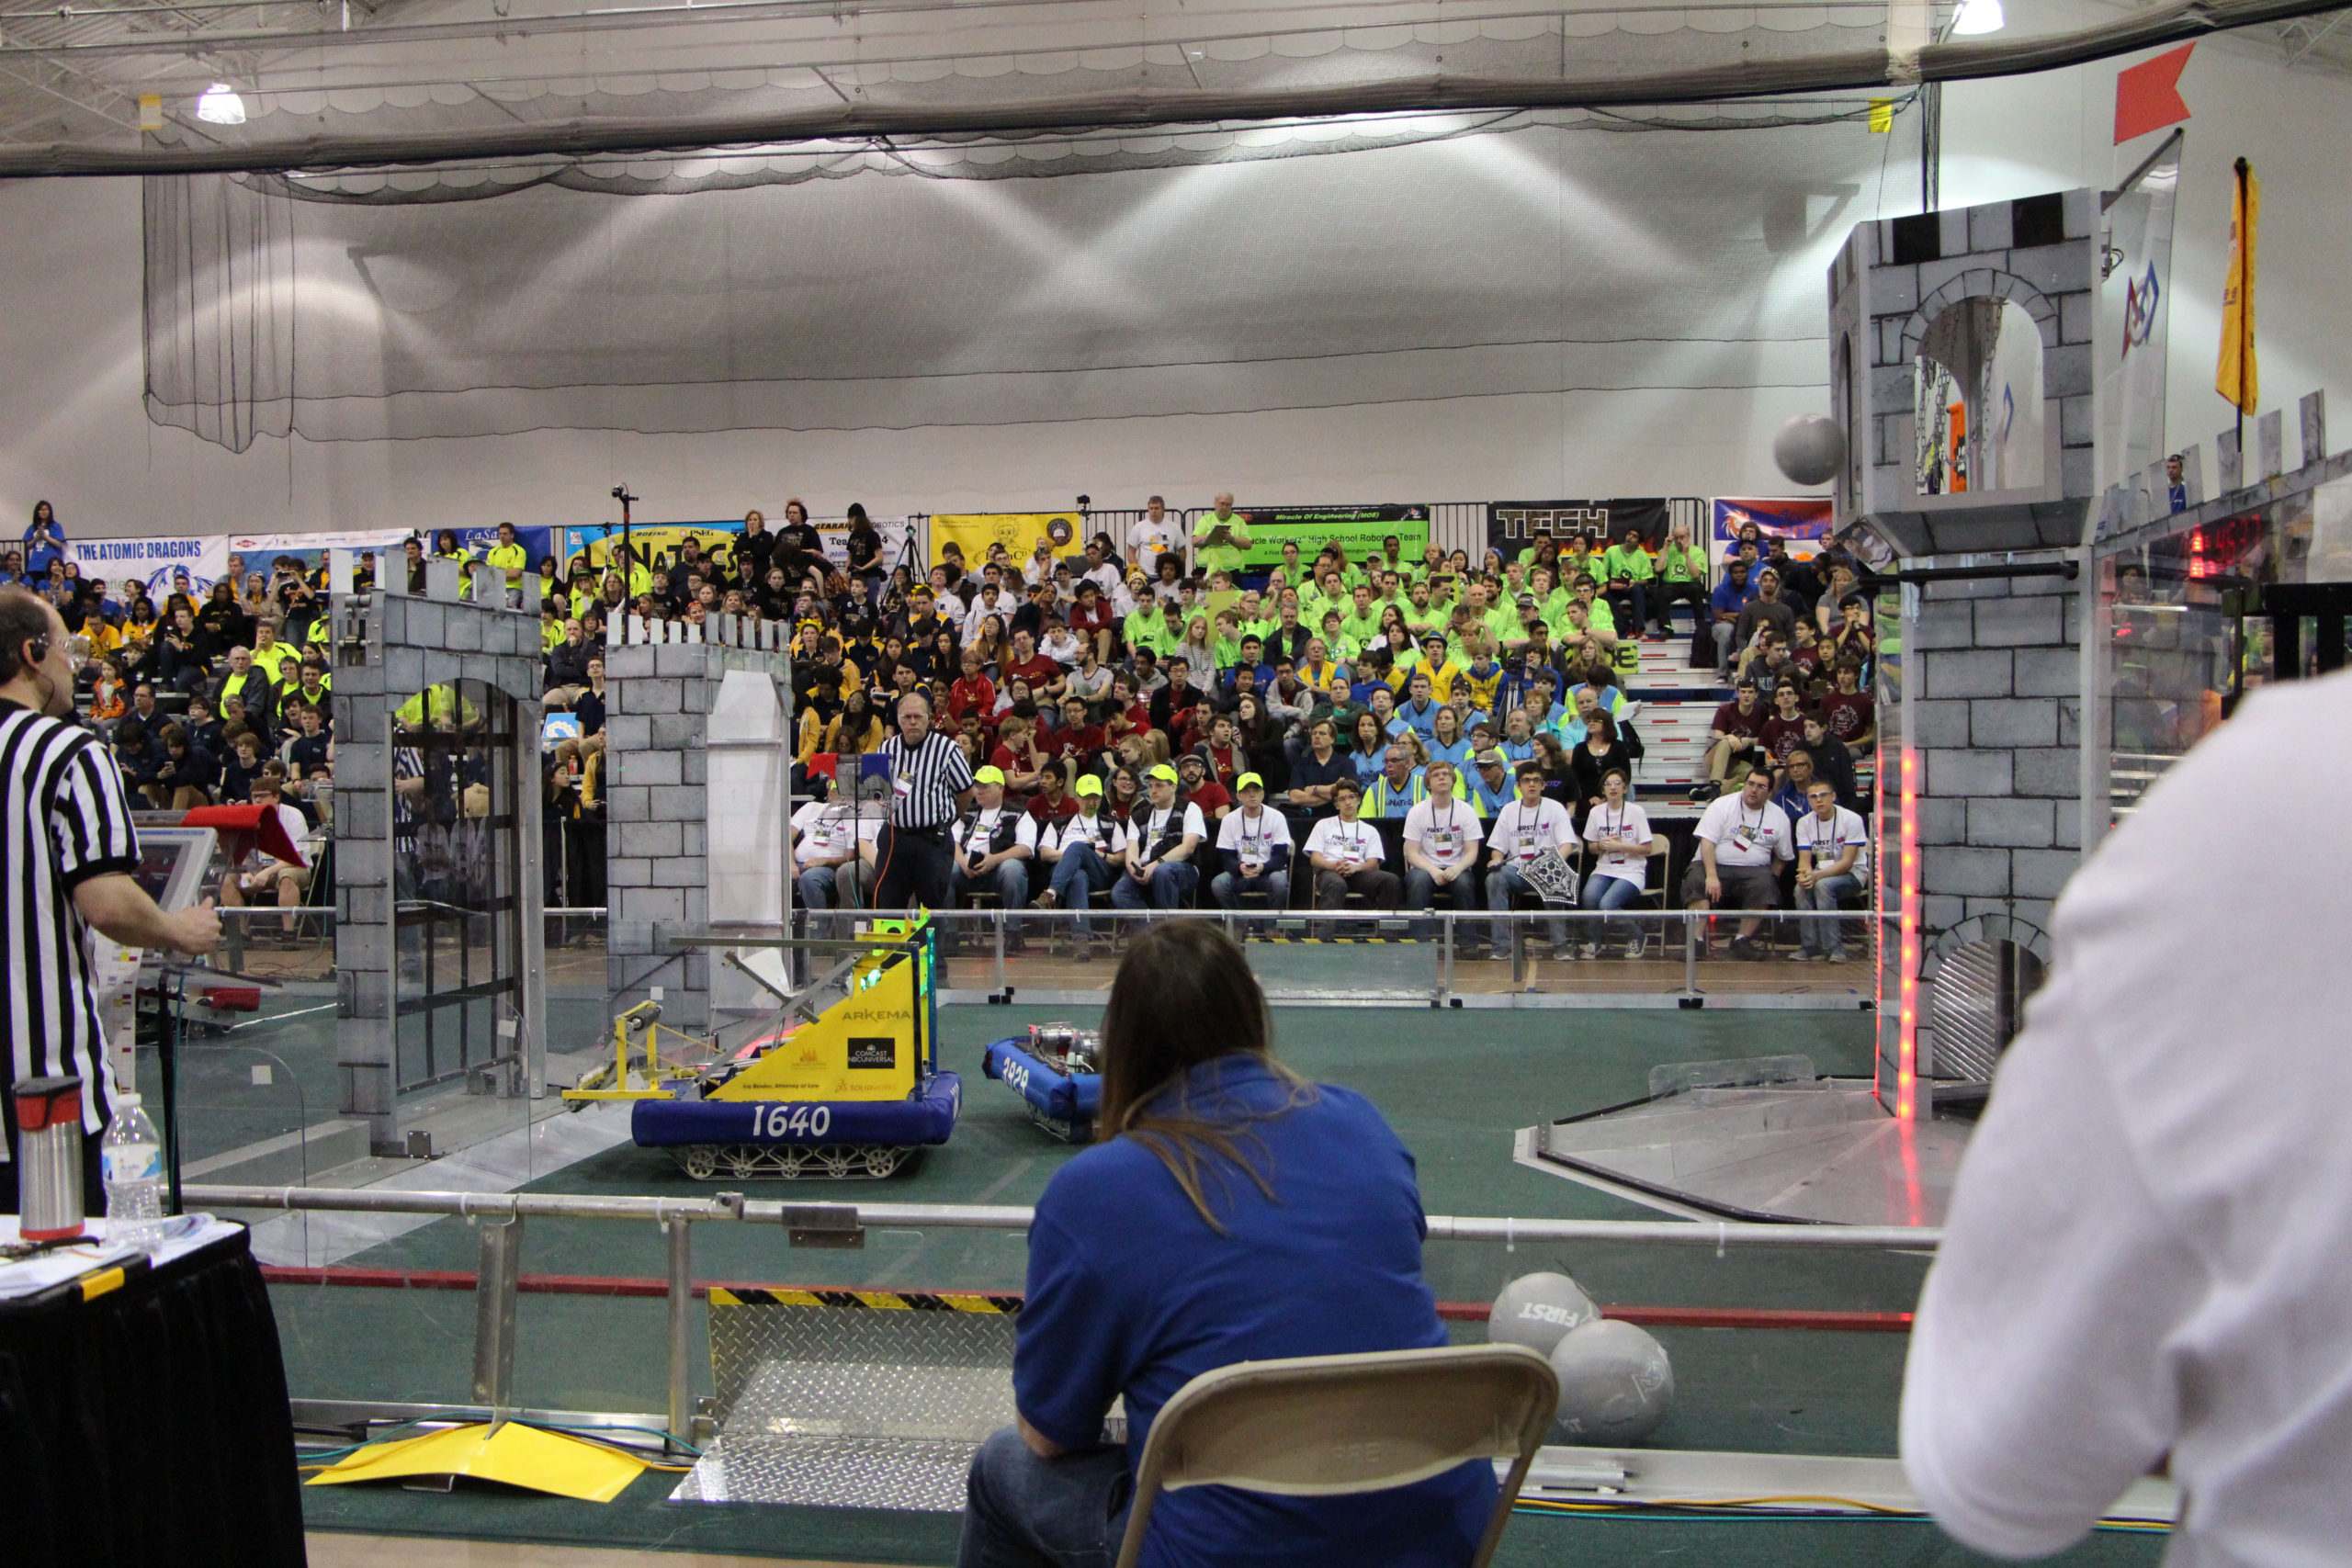 Downingtown Student Team Heading to FIRST Robotics Championship